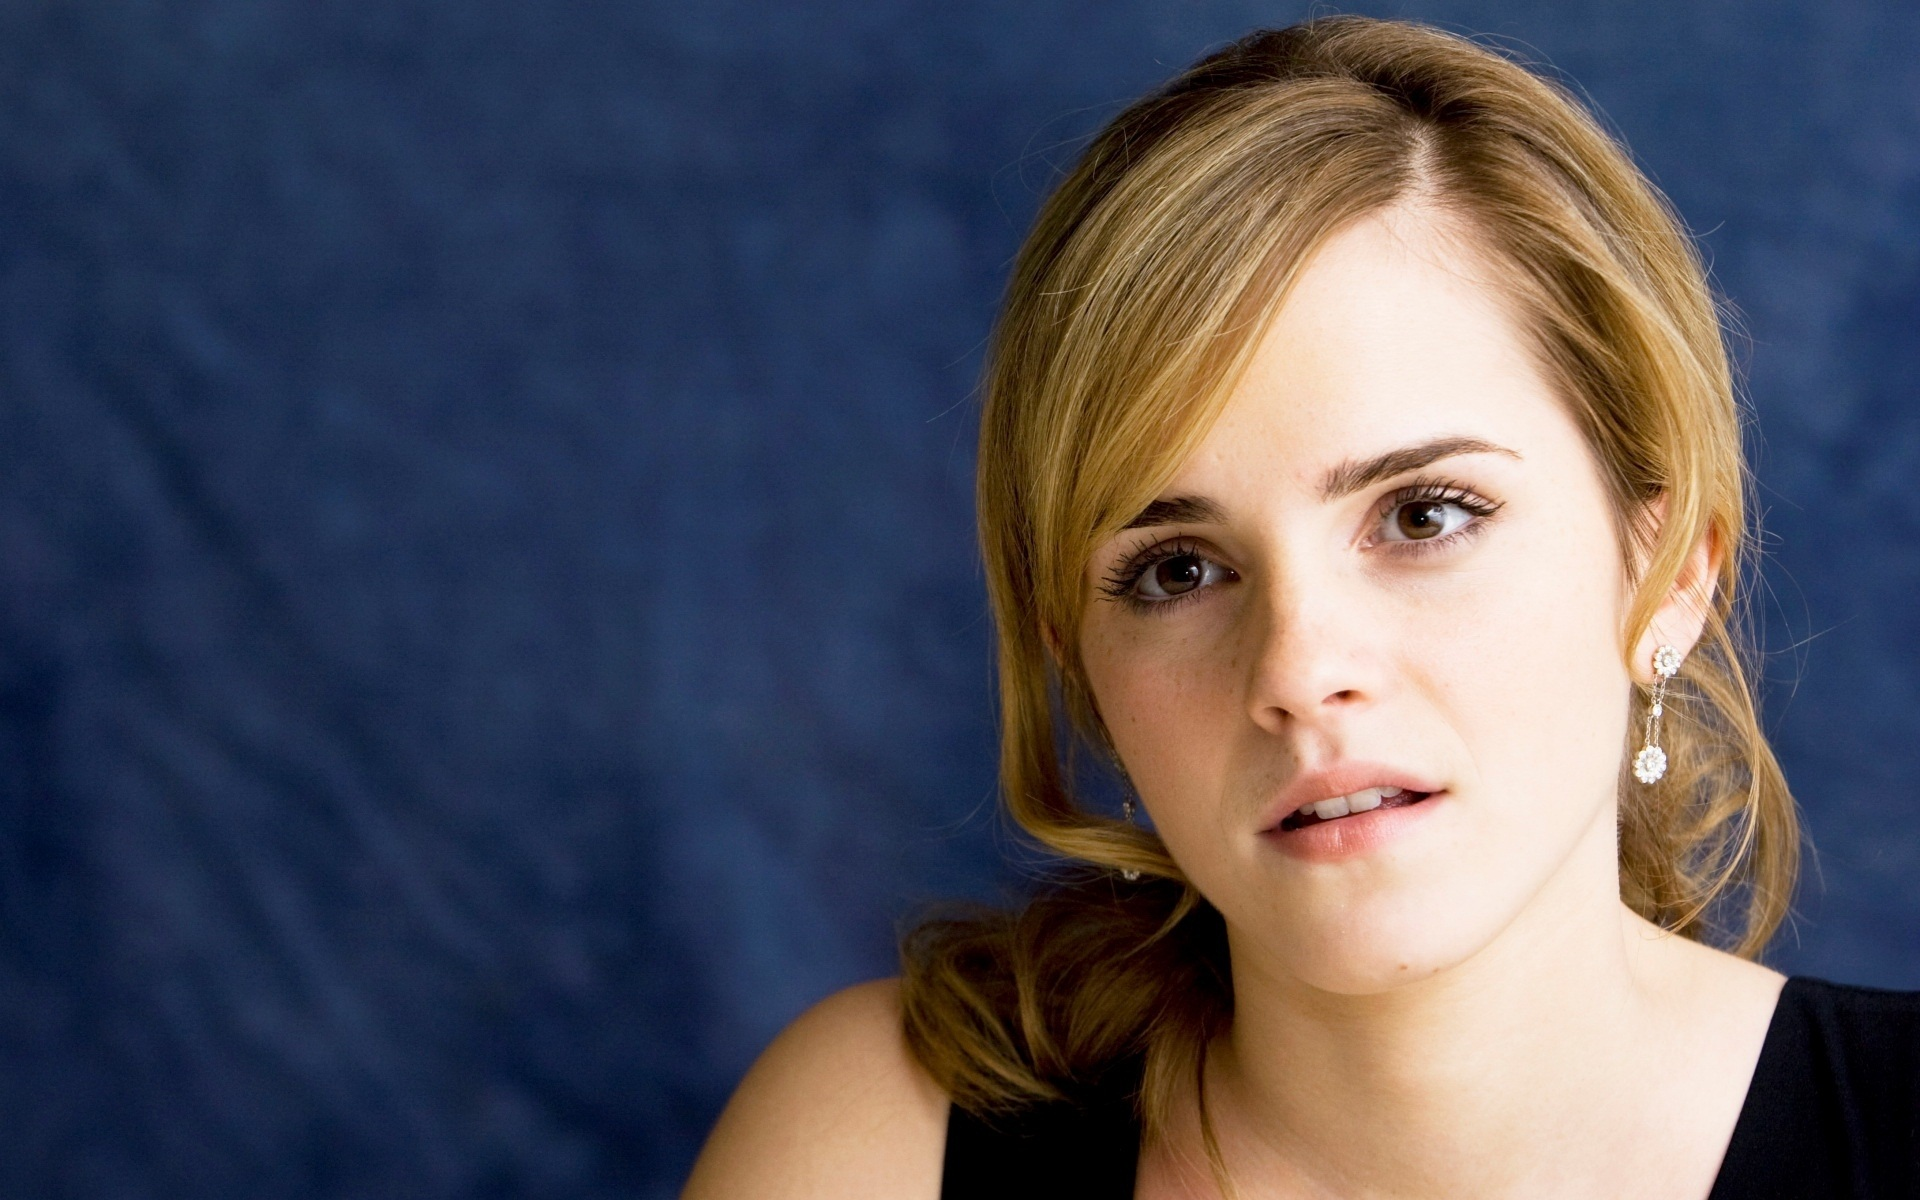 emma watson hd wallpapers for desktop download